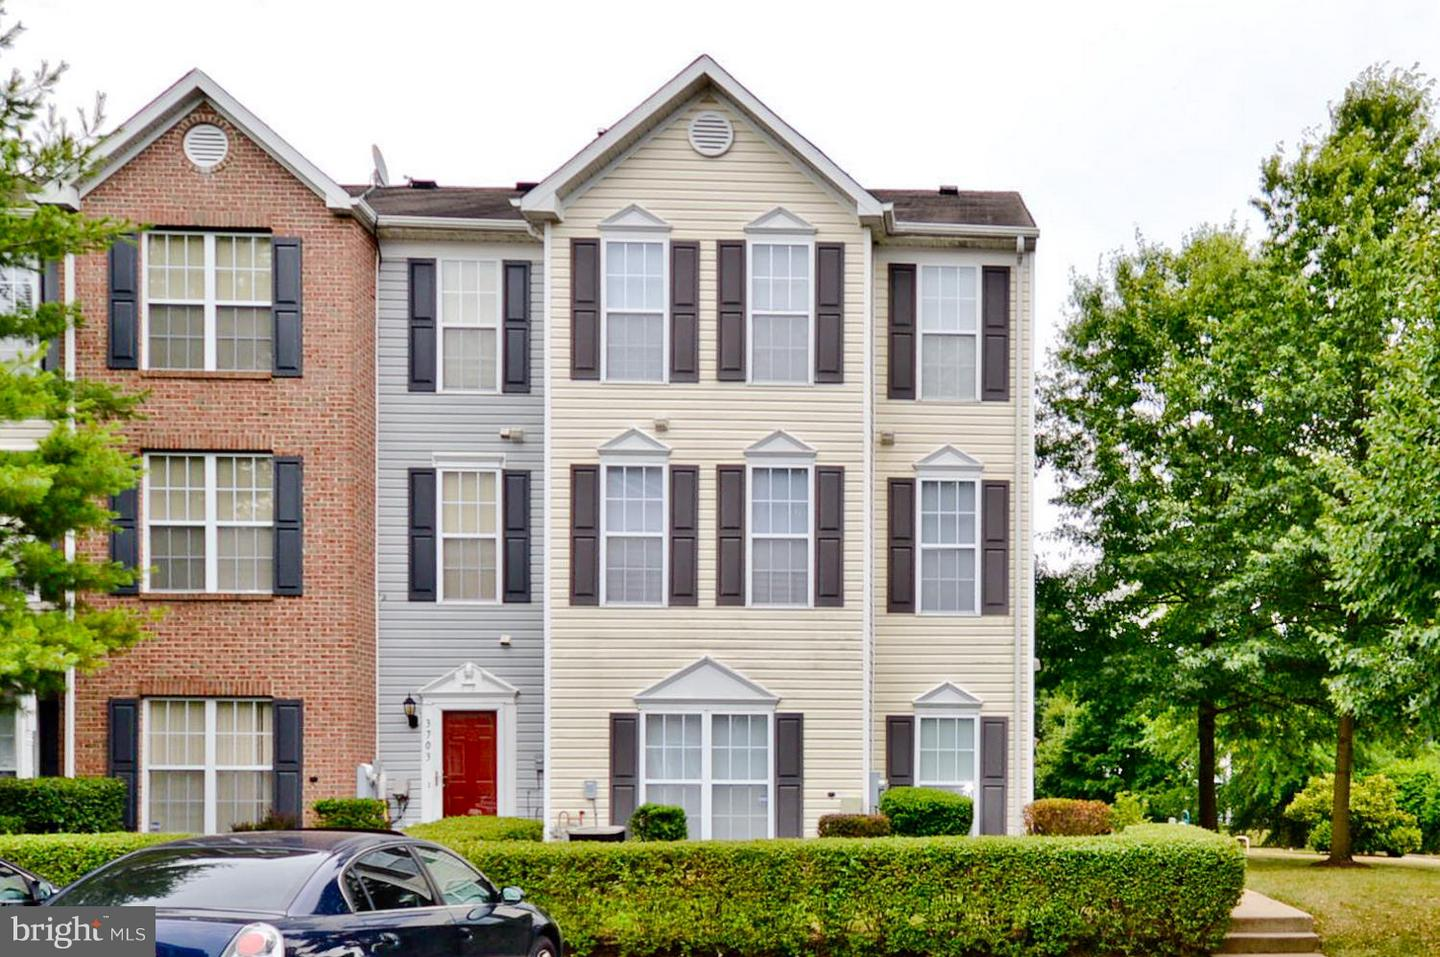 3701 ELMCREST LANE, BOWIE, Maryland